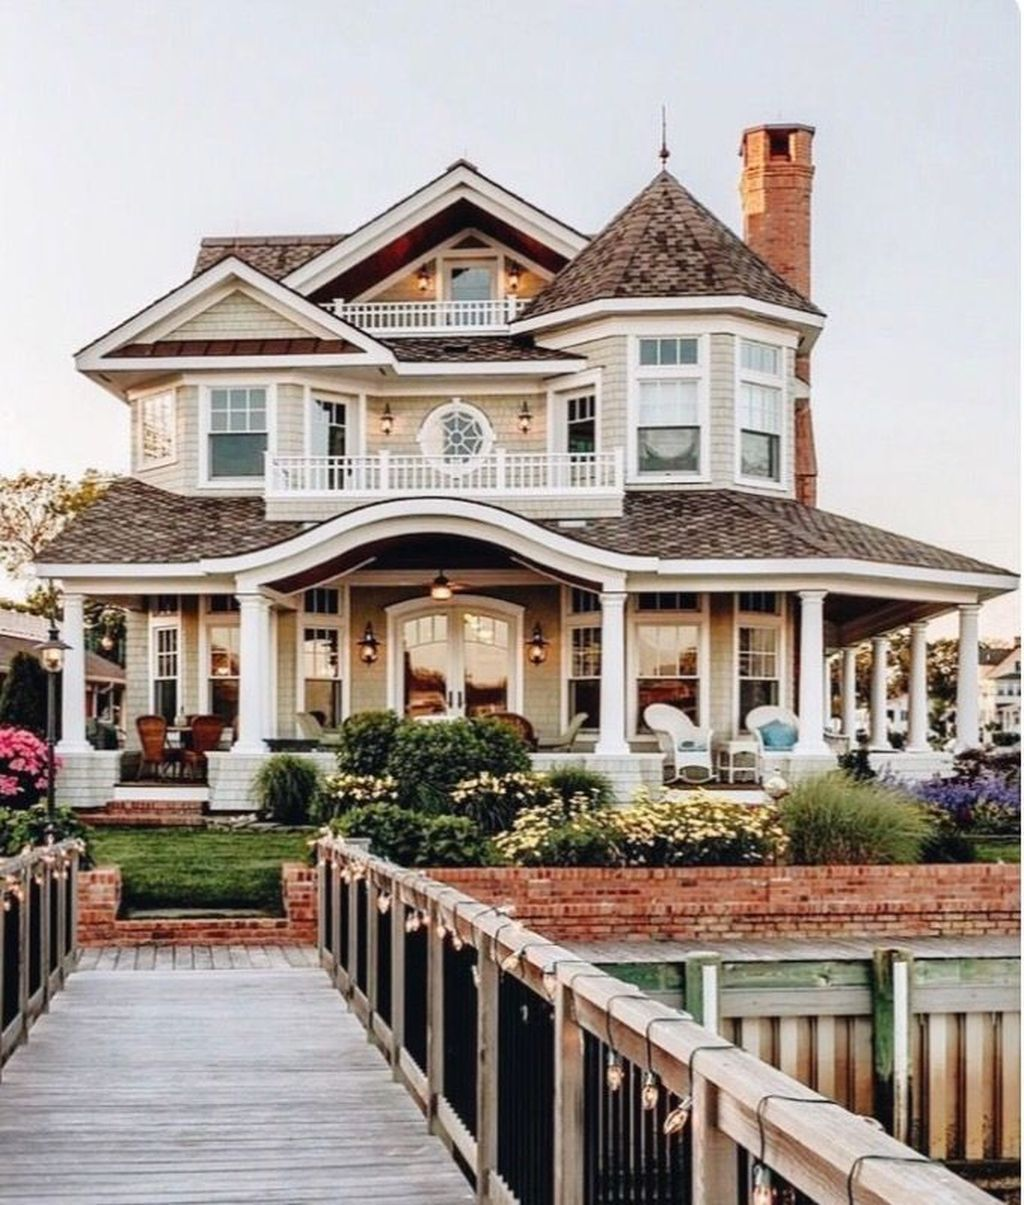 32 Stunning American House Architecture Design Ideas That Most People Look For American A In 2020 Dream House Exterior House Designs Exterior Beach House Interior